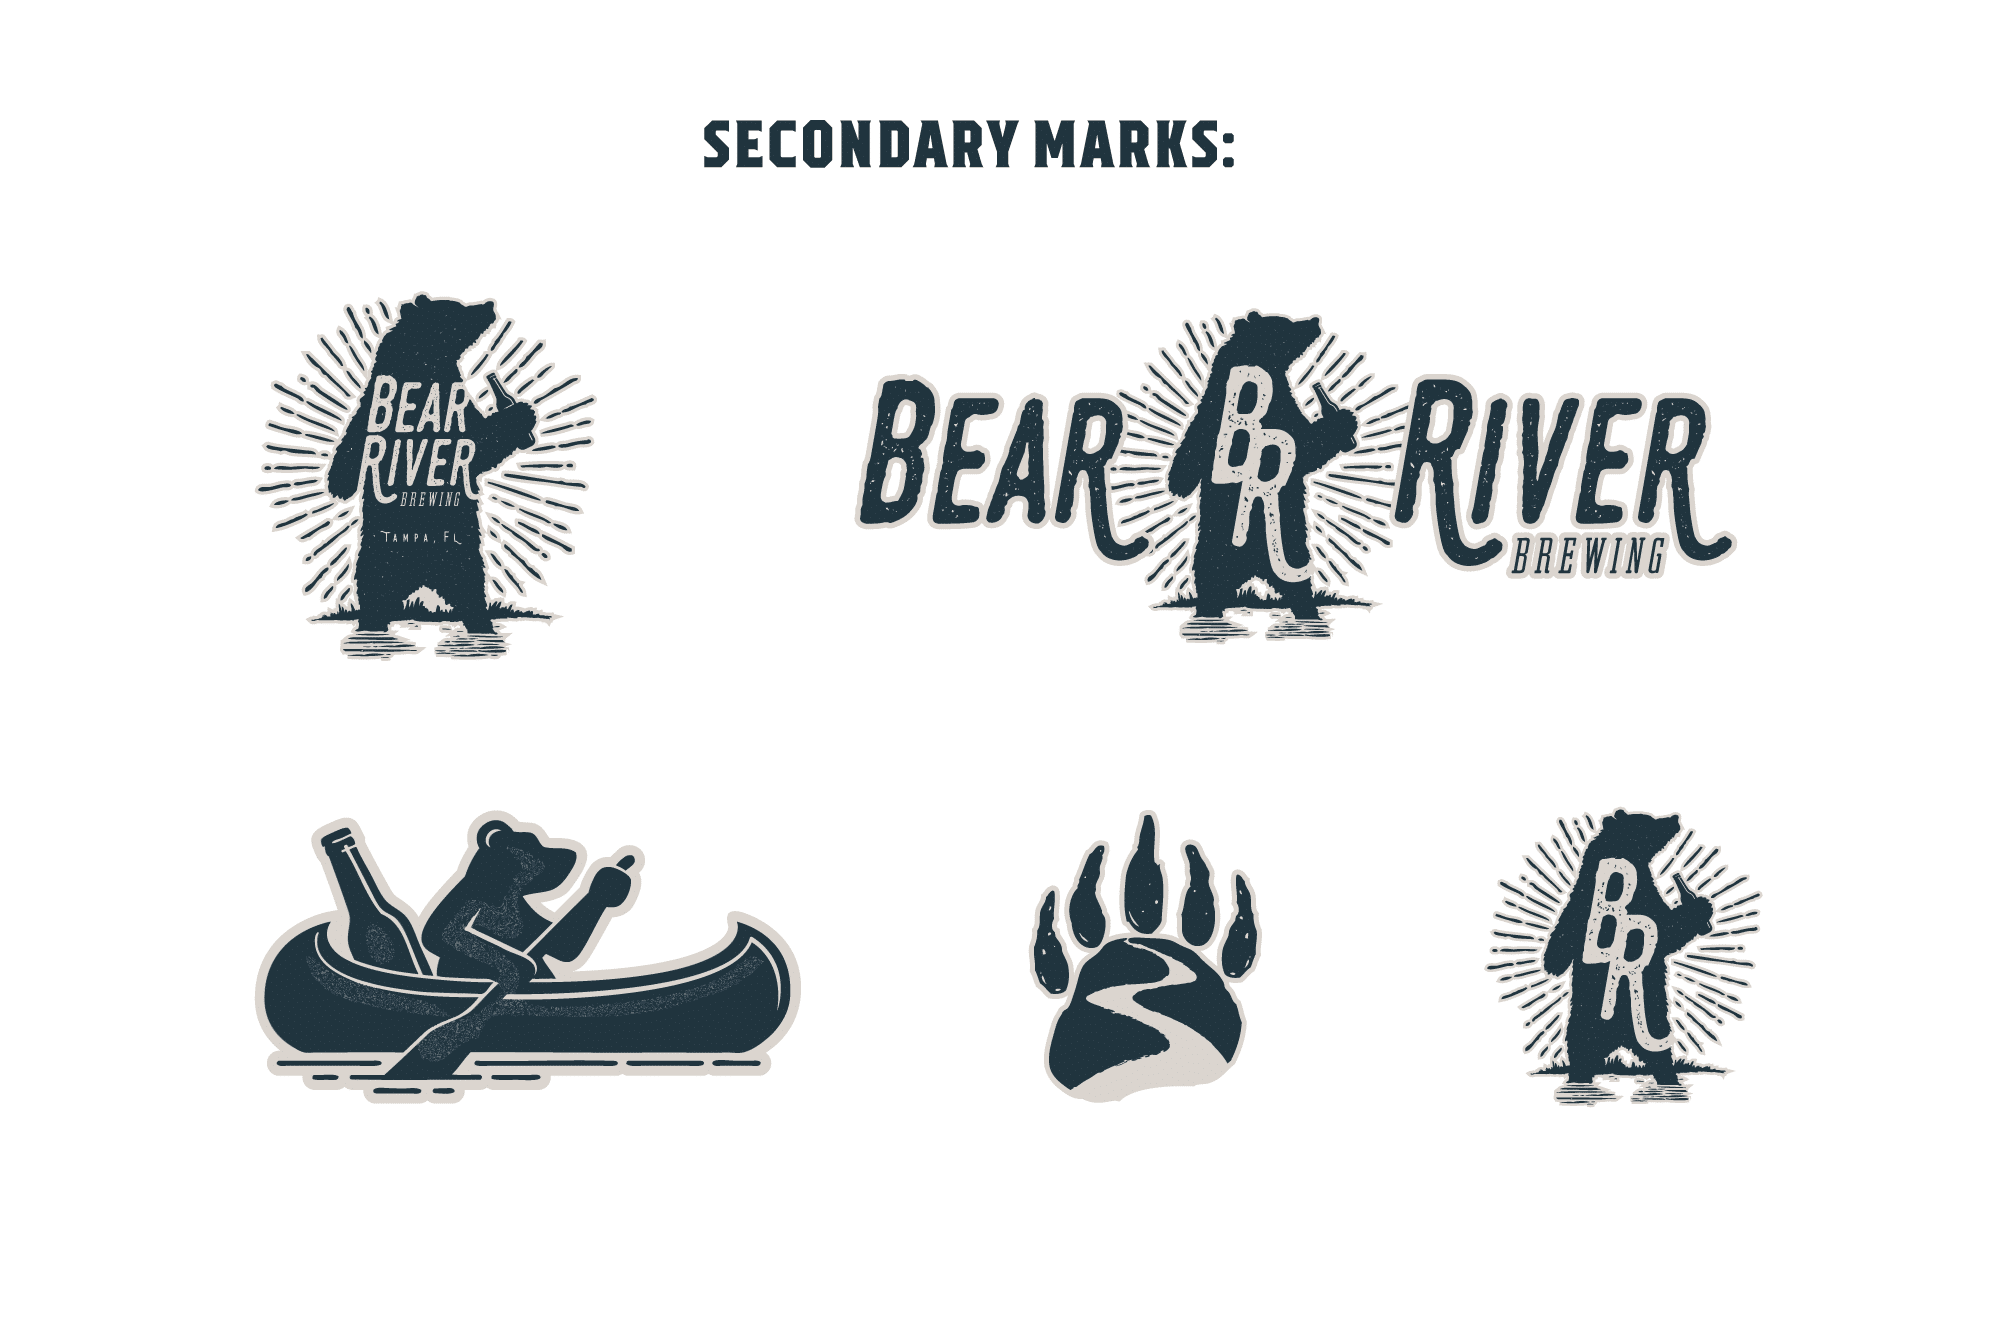 Bear River Brewing secondary logo marks